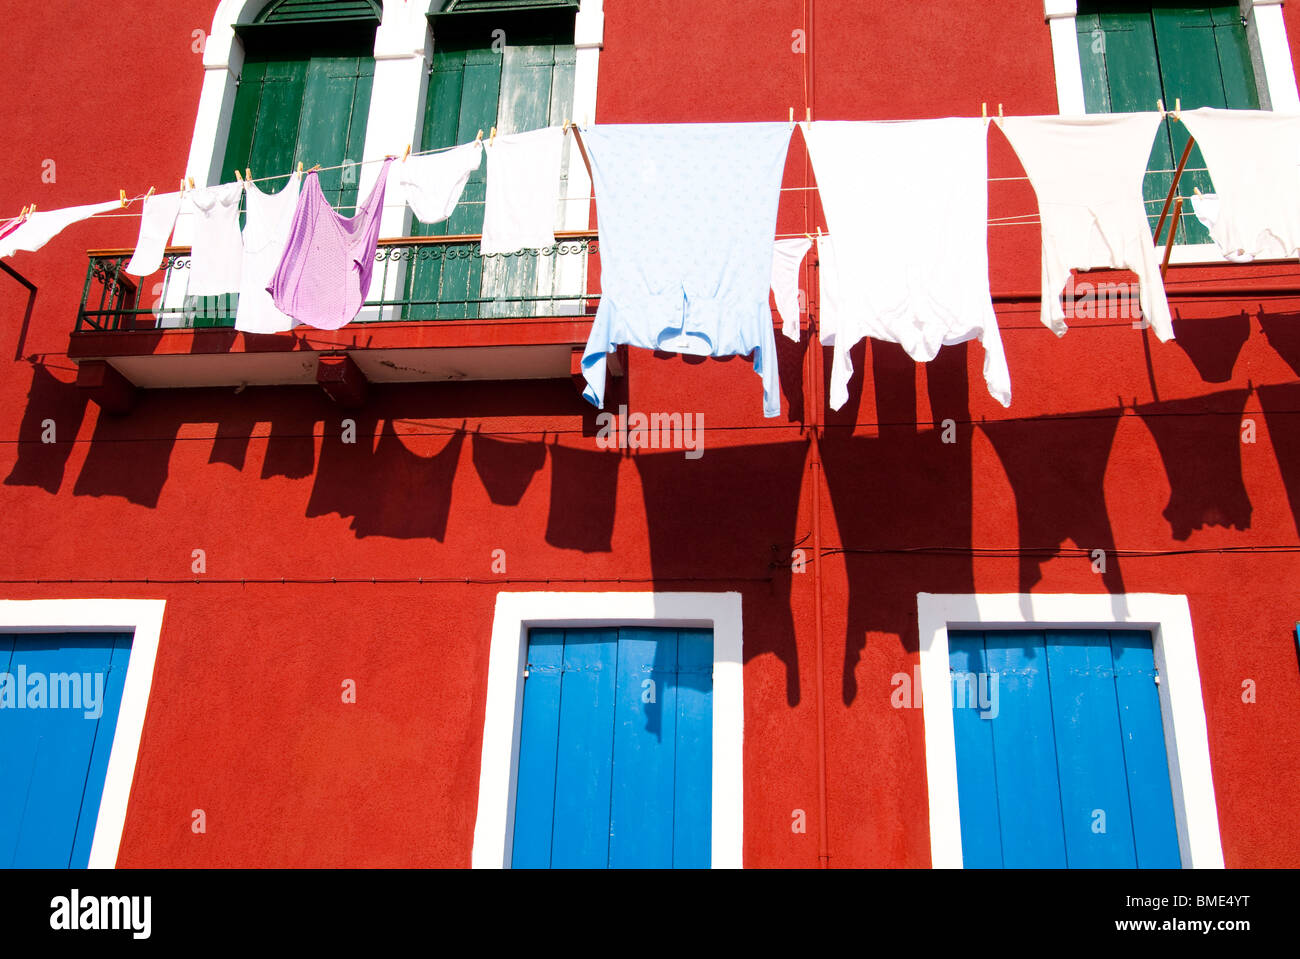 Laundry and clothes hanging out to dry in the streets of Burano, Italy near Venice. - Stock Image